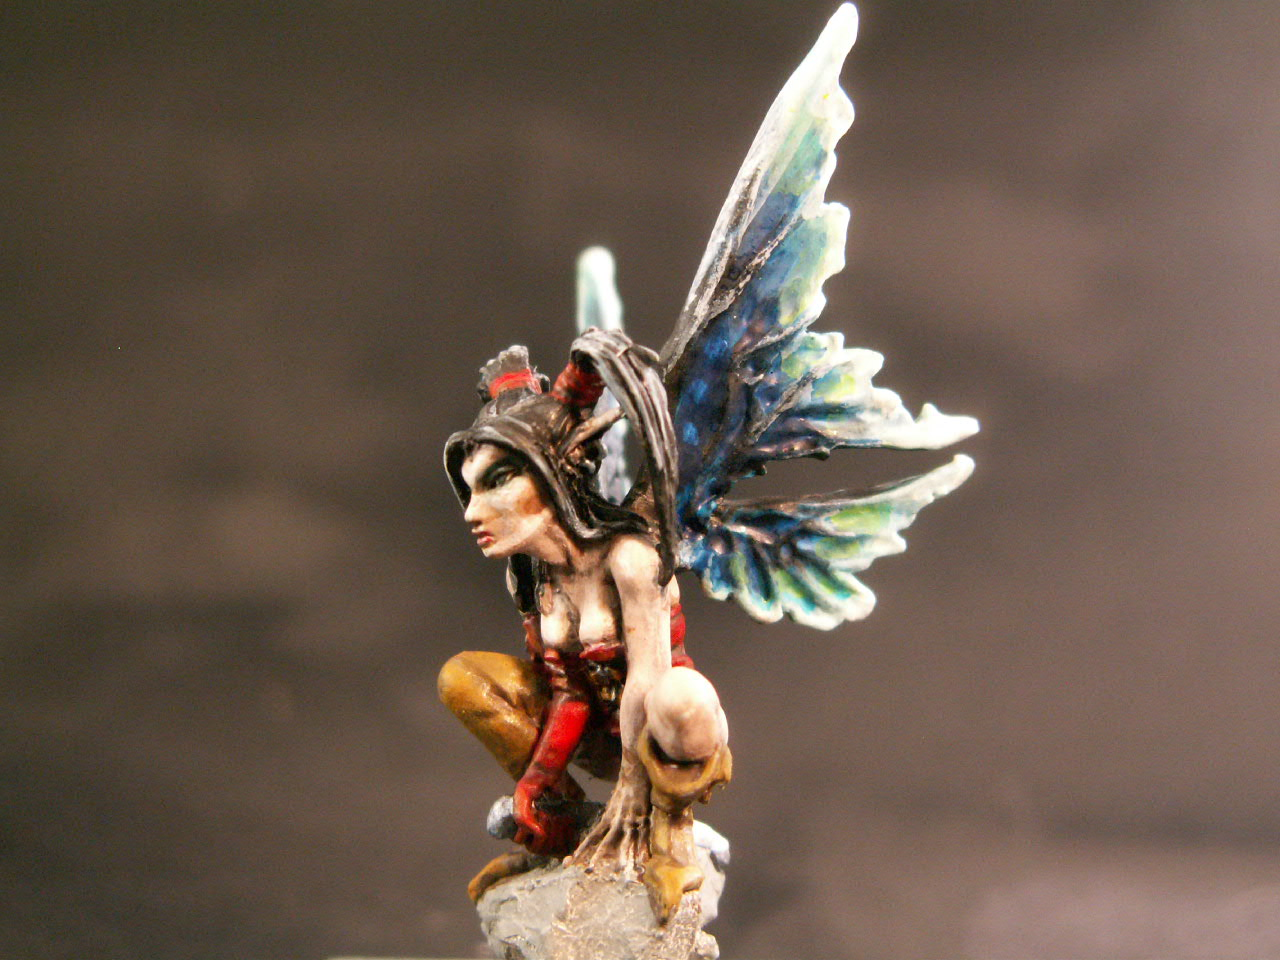 Freebooter's Bad Fairy